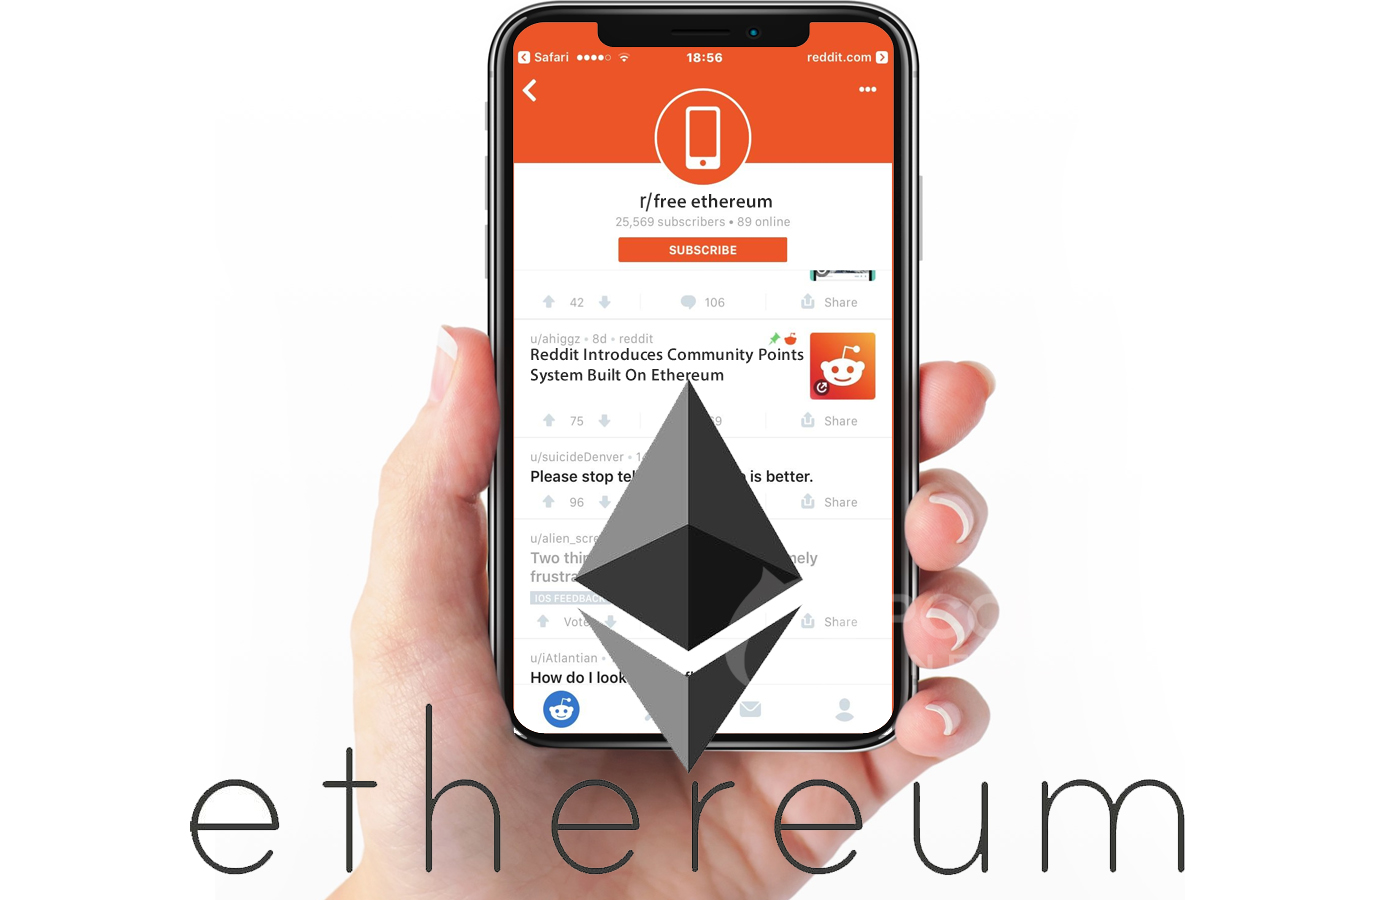 Reddit Introduces Community Points System Built On Ethereum